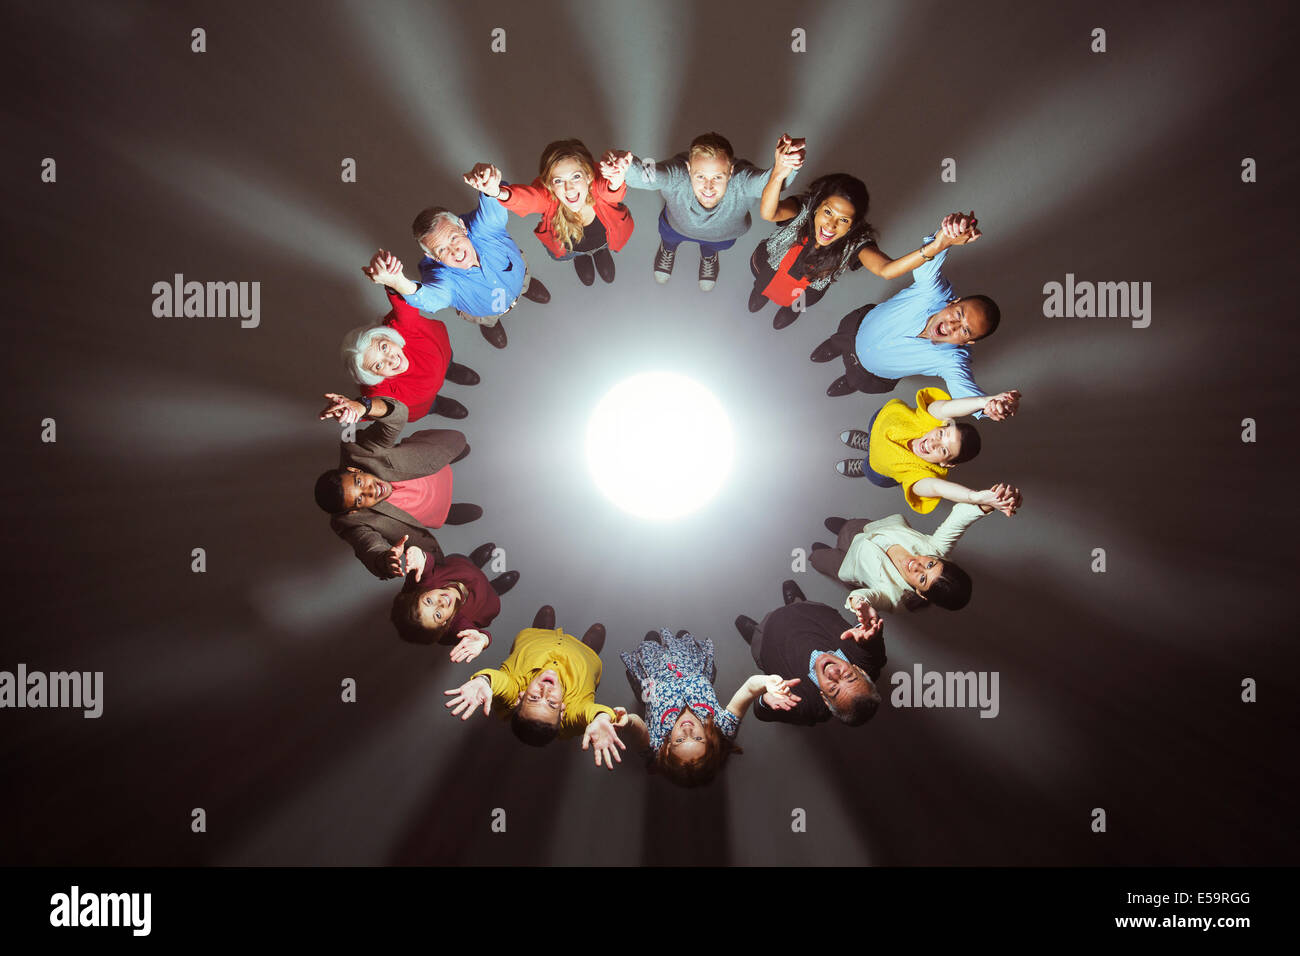 Diverse crowd around bright light - Stock Image